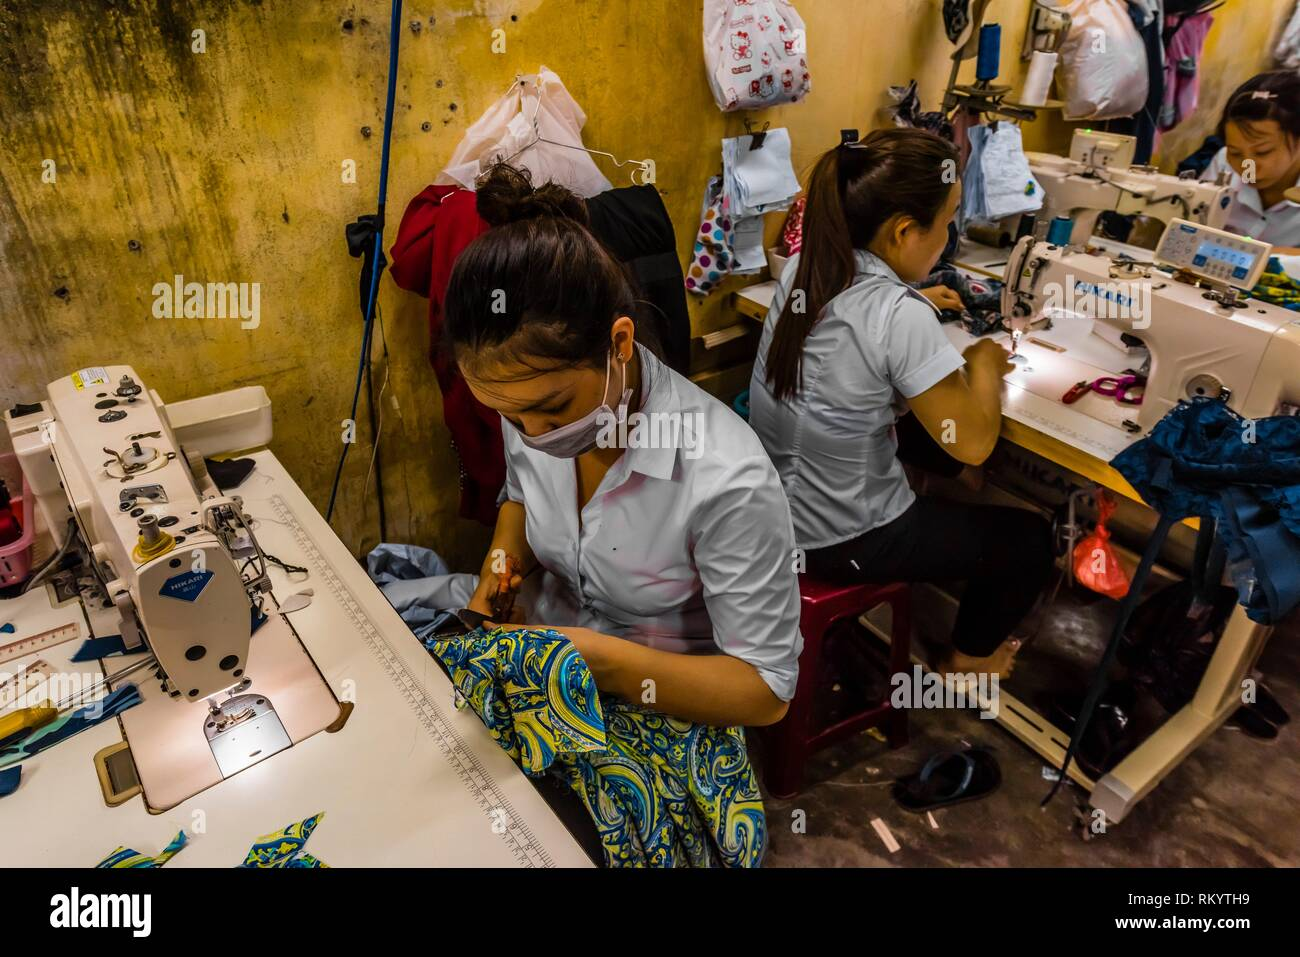 Tailors at work on garments, Yaly Couture, the most prestigious bespoke tailor and shoemaker in Hoi An, Vietnam. - Stock Image